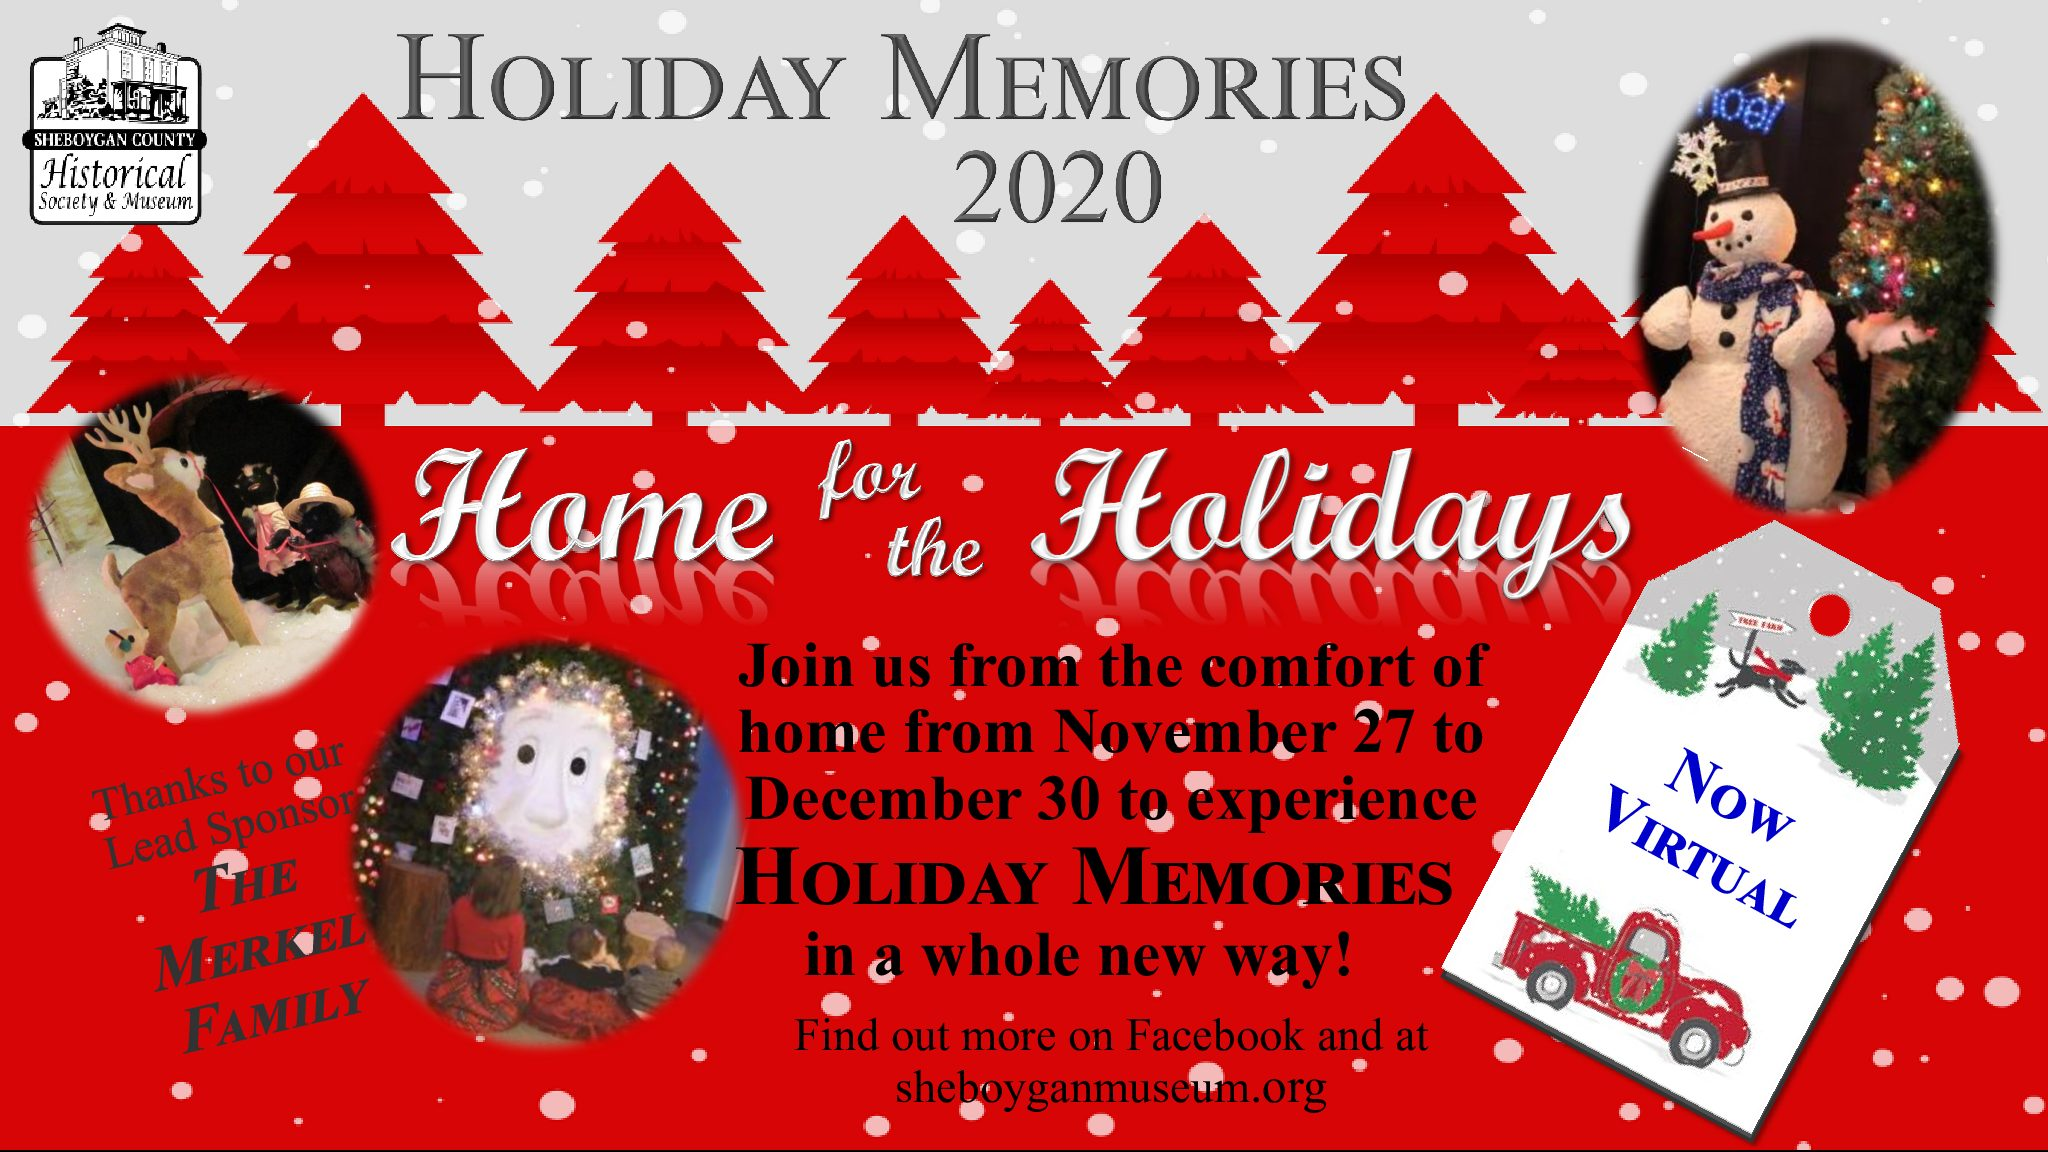 NOW VIRTUAL!! Holiday Memories 2020: Home for the Holidays